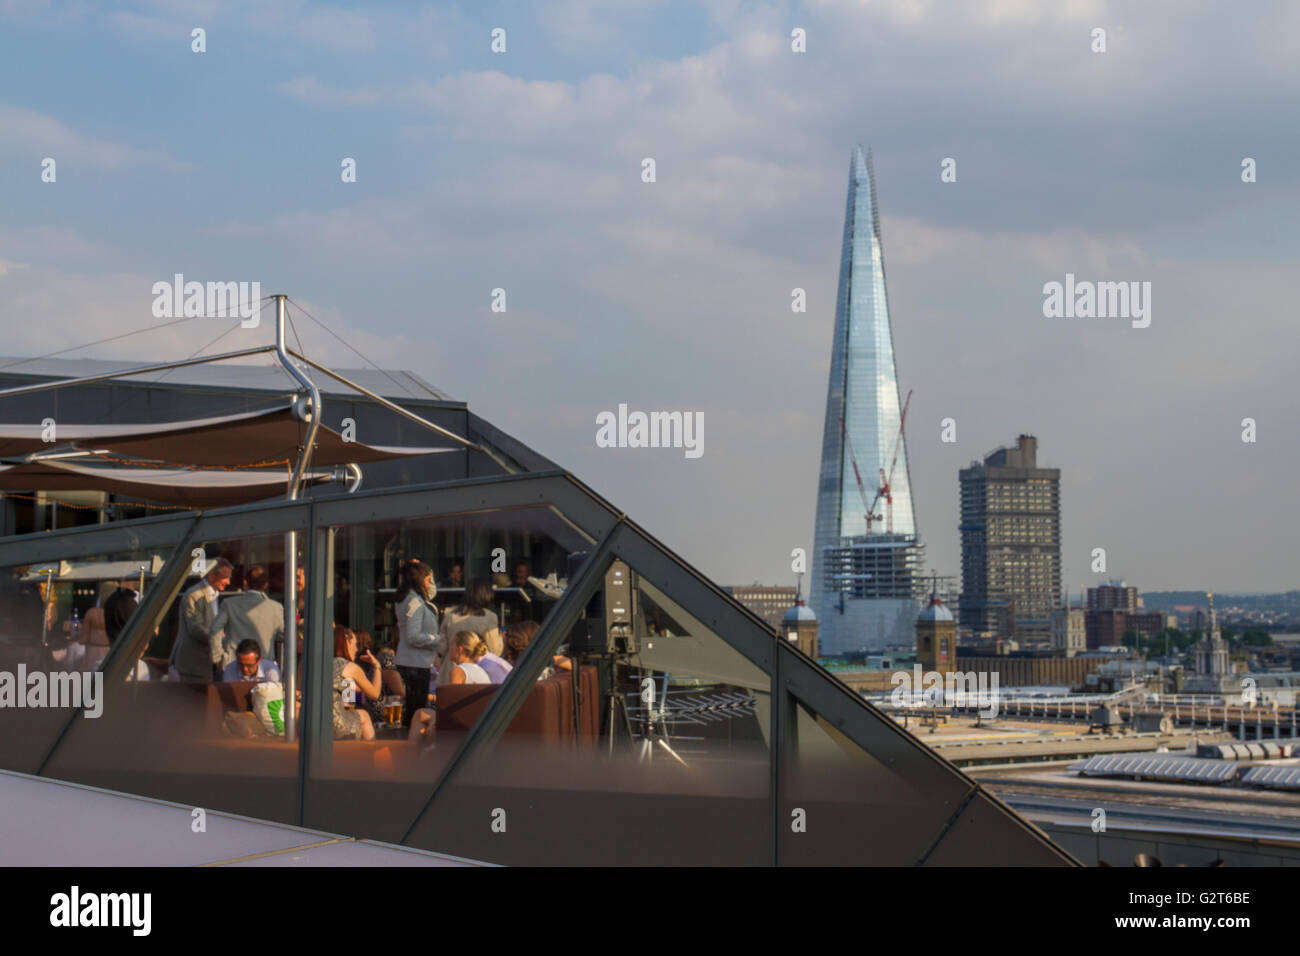 Diners At  A City Restaurant With The Shard in The Distance - Stock Image